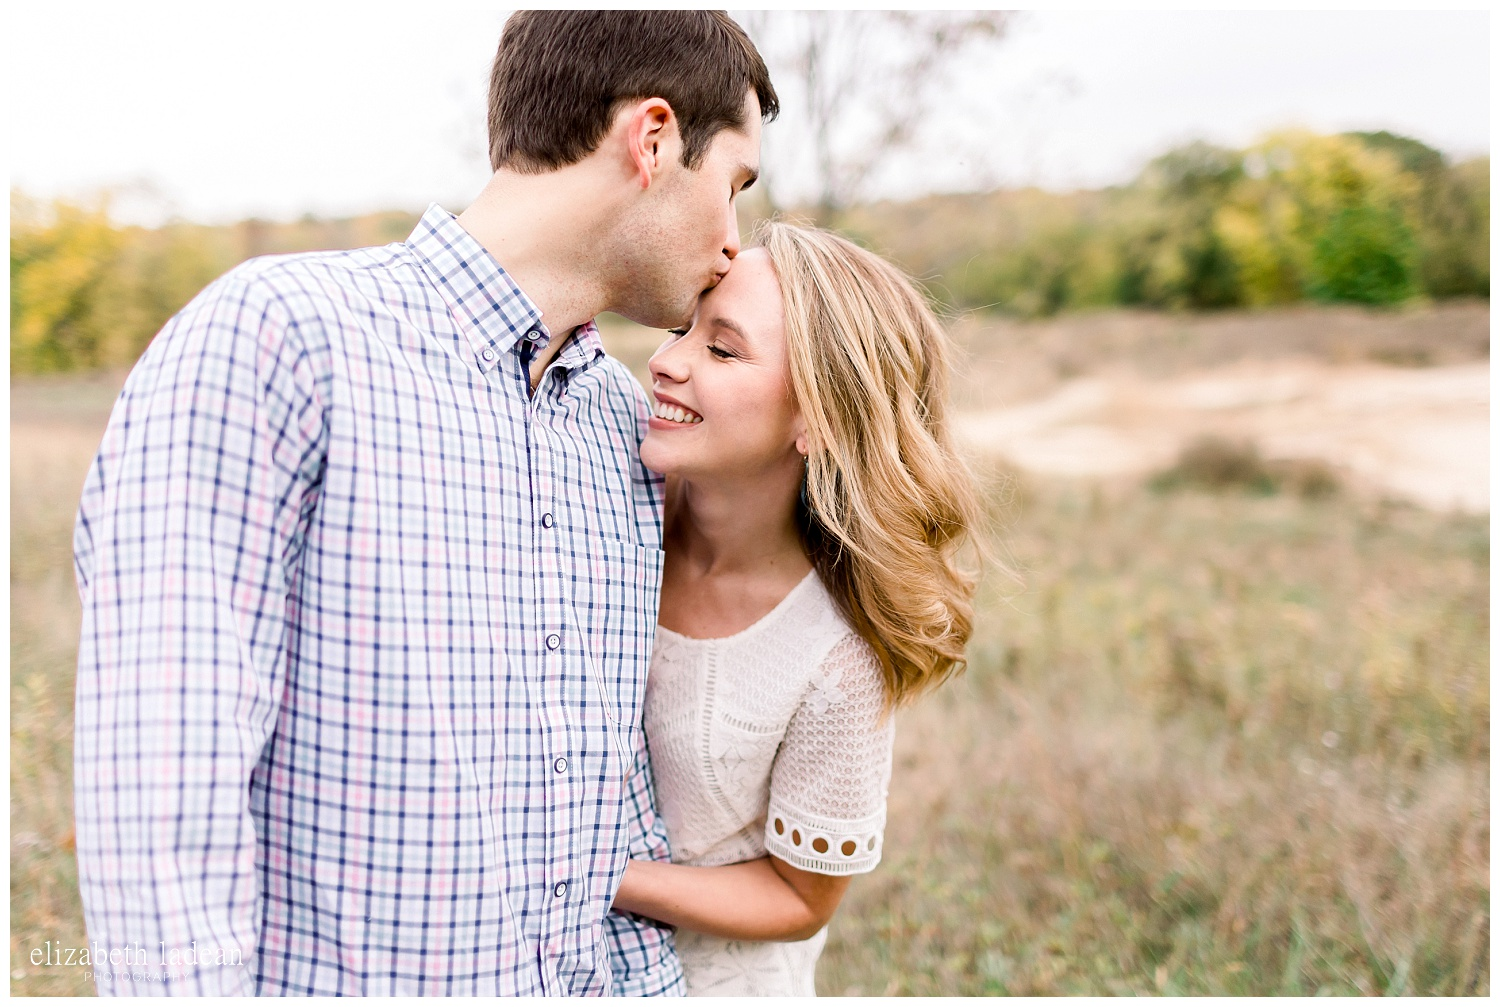 Colorful-Fall-Engagement-Photos-in-KC-C+B-2018-elizabeth-ladean-photography-photo_1786.jpg